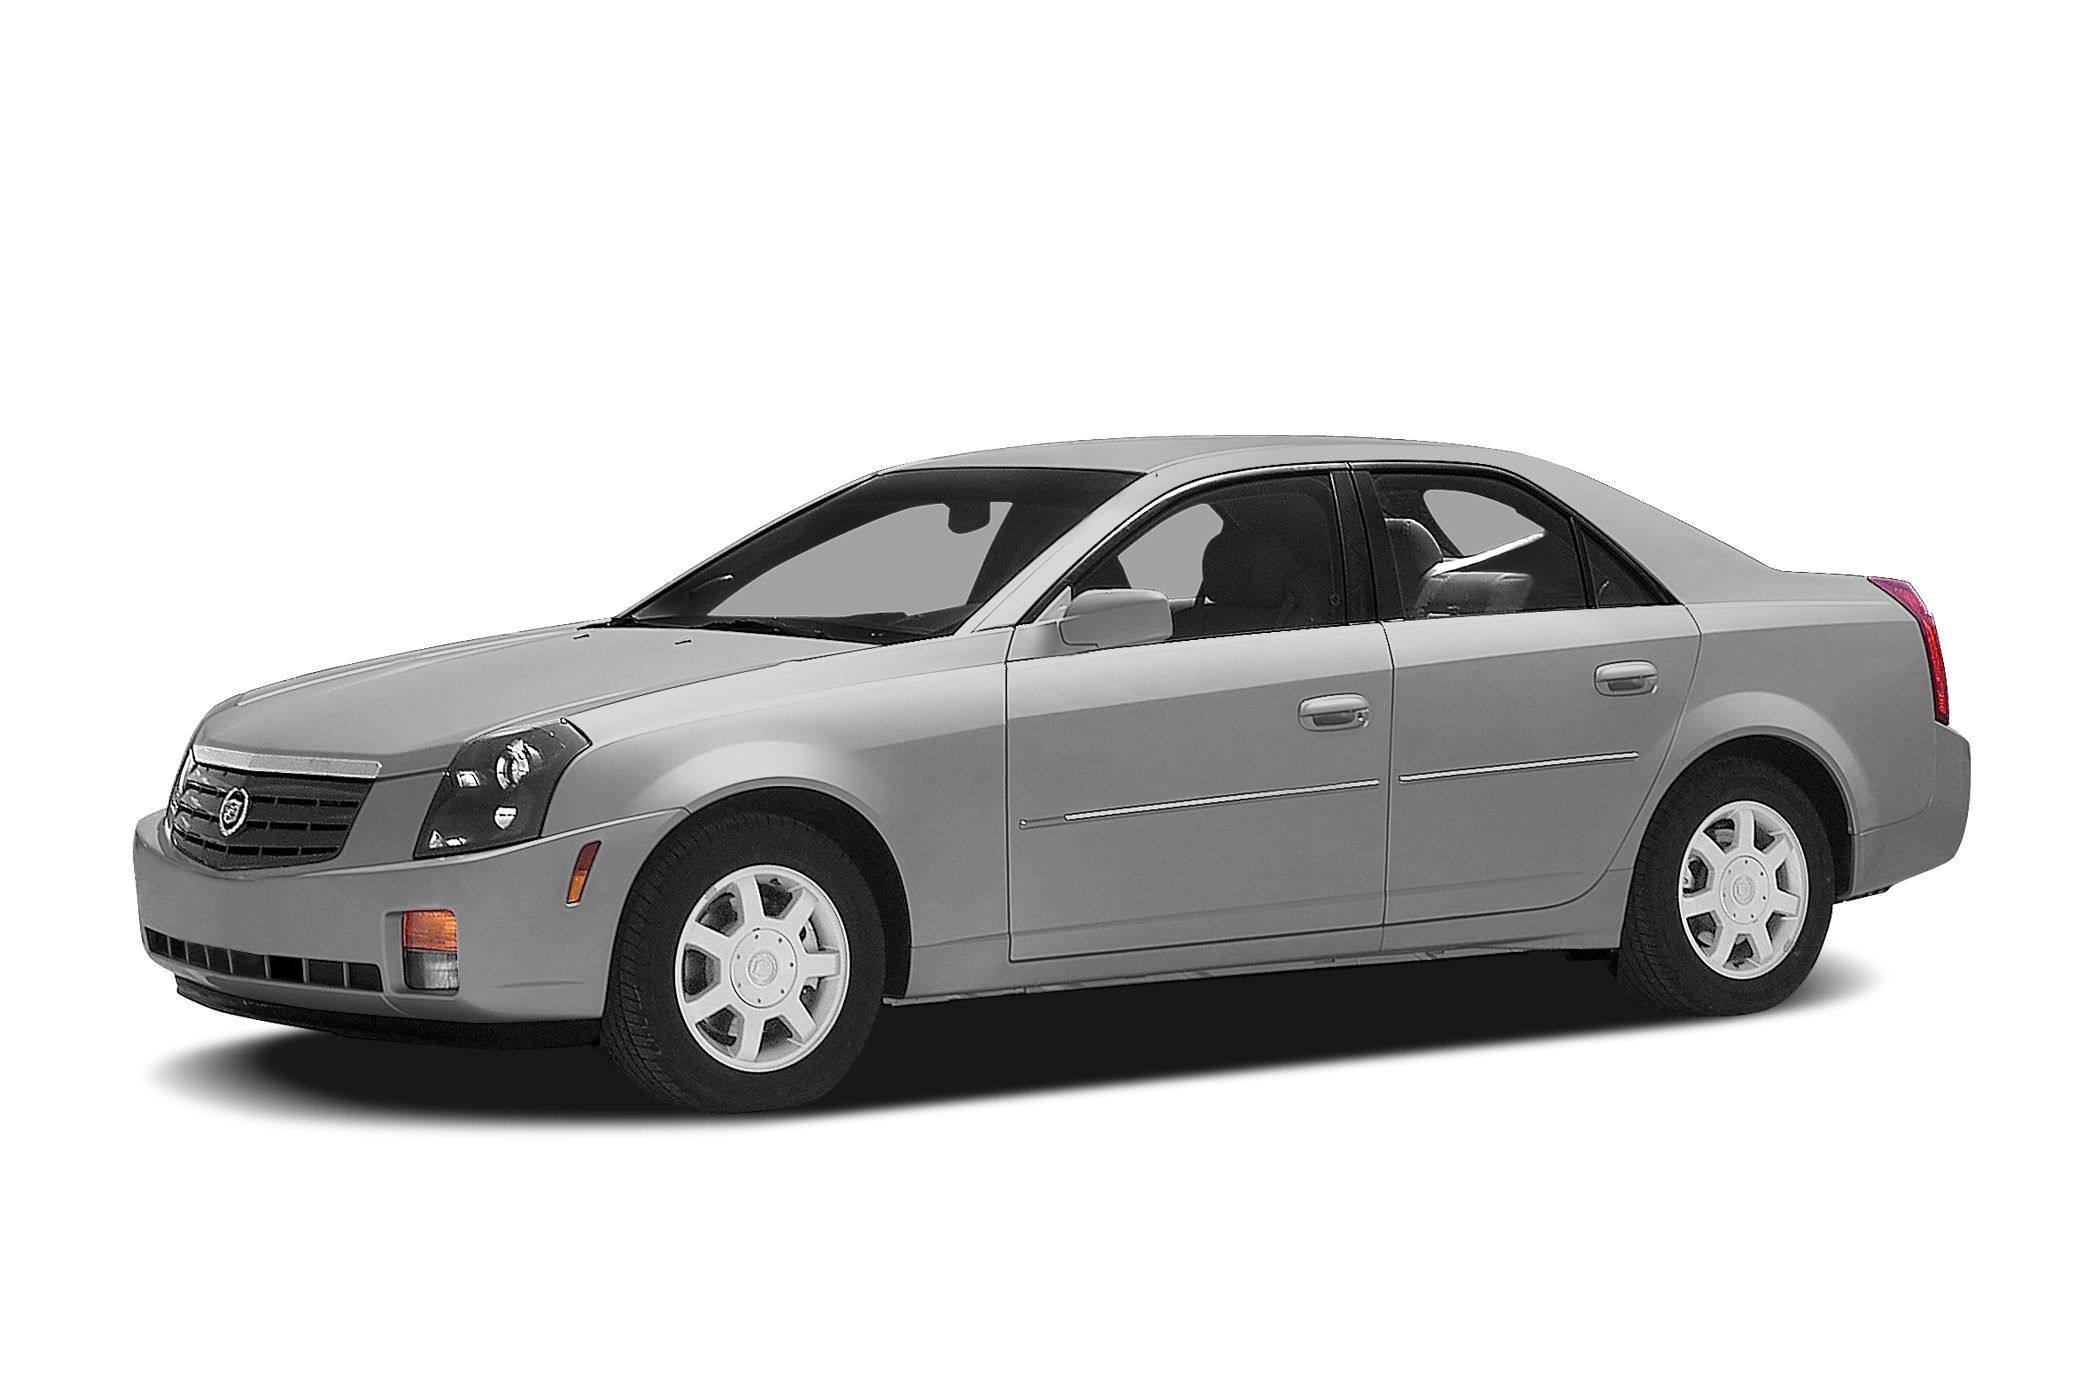 2007 Cadillac CTS Sedan for sale in Alexandria for $13,000 with 21,888 miles